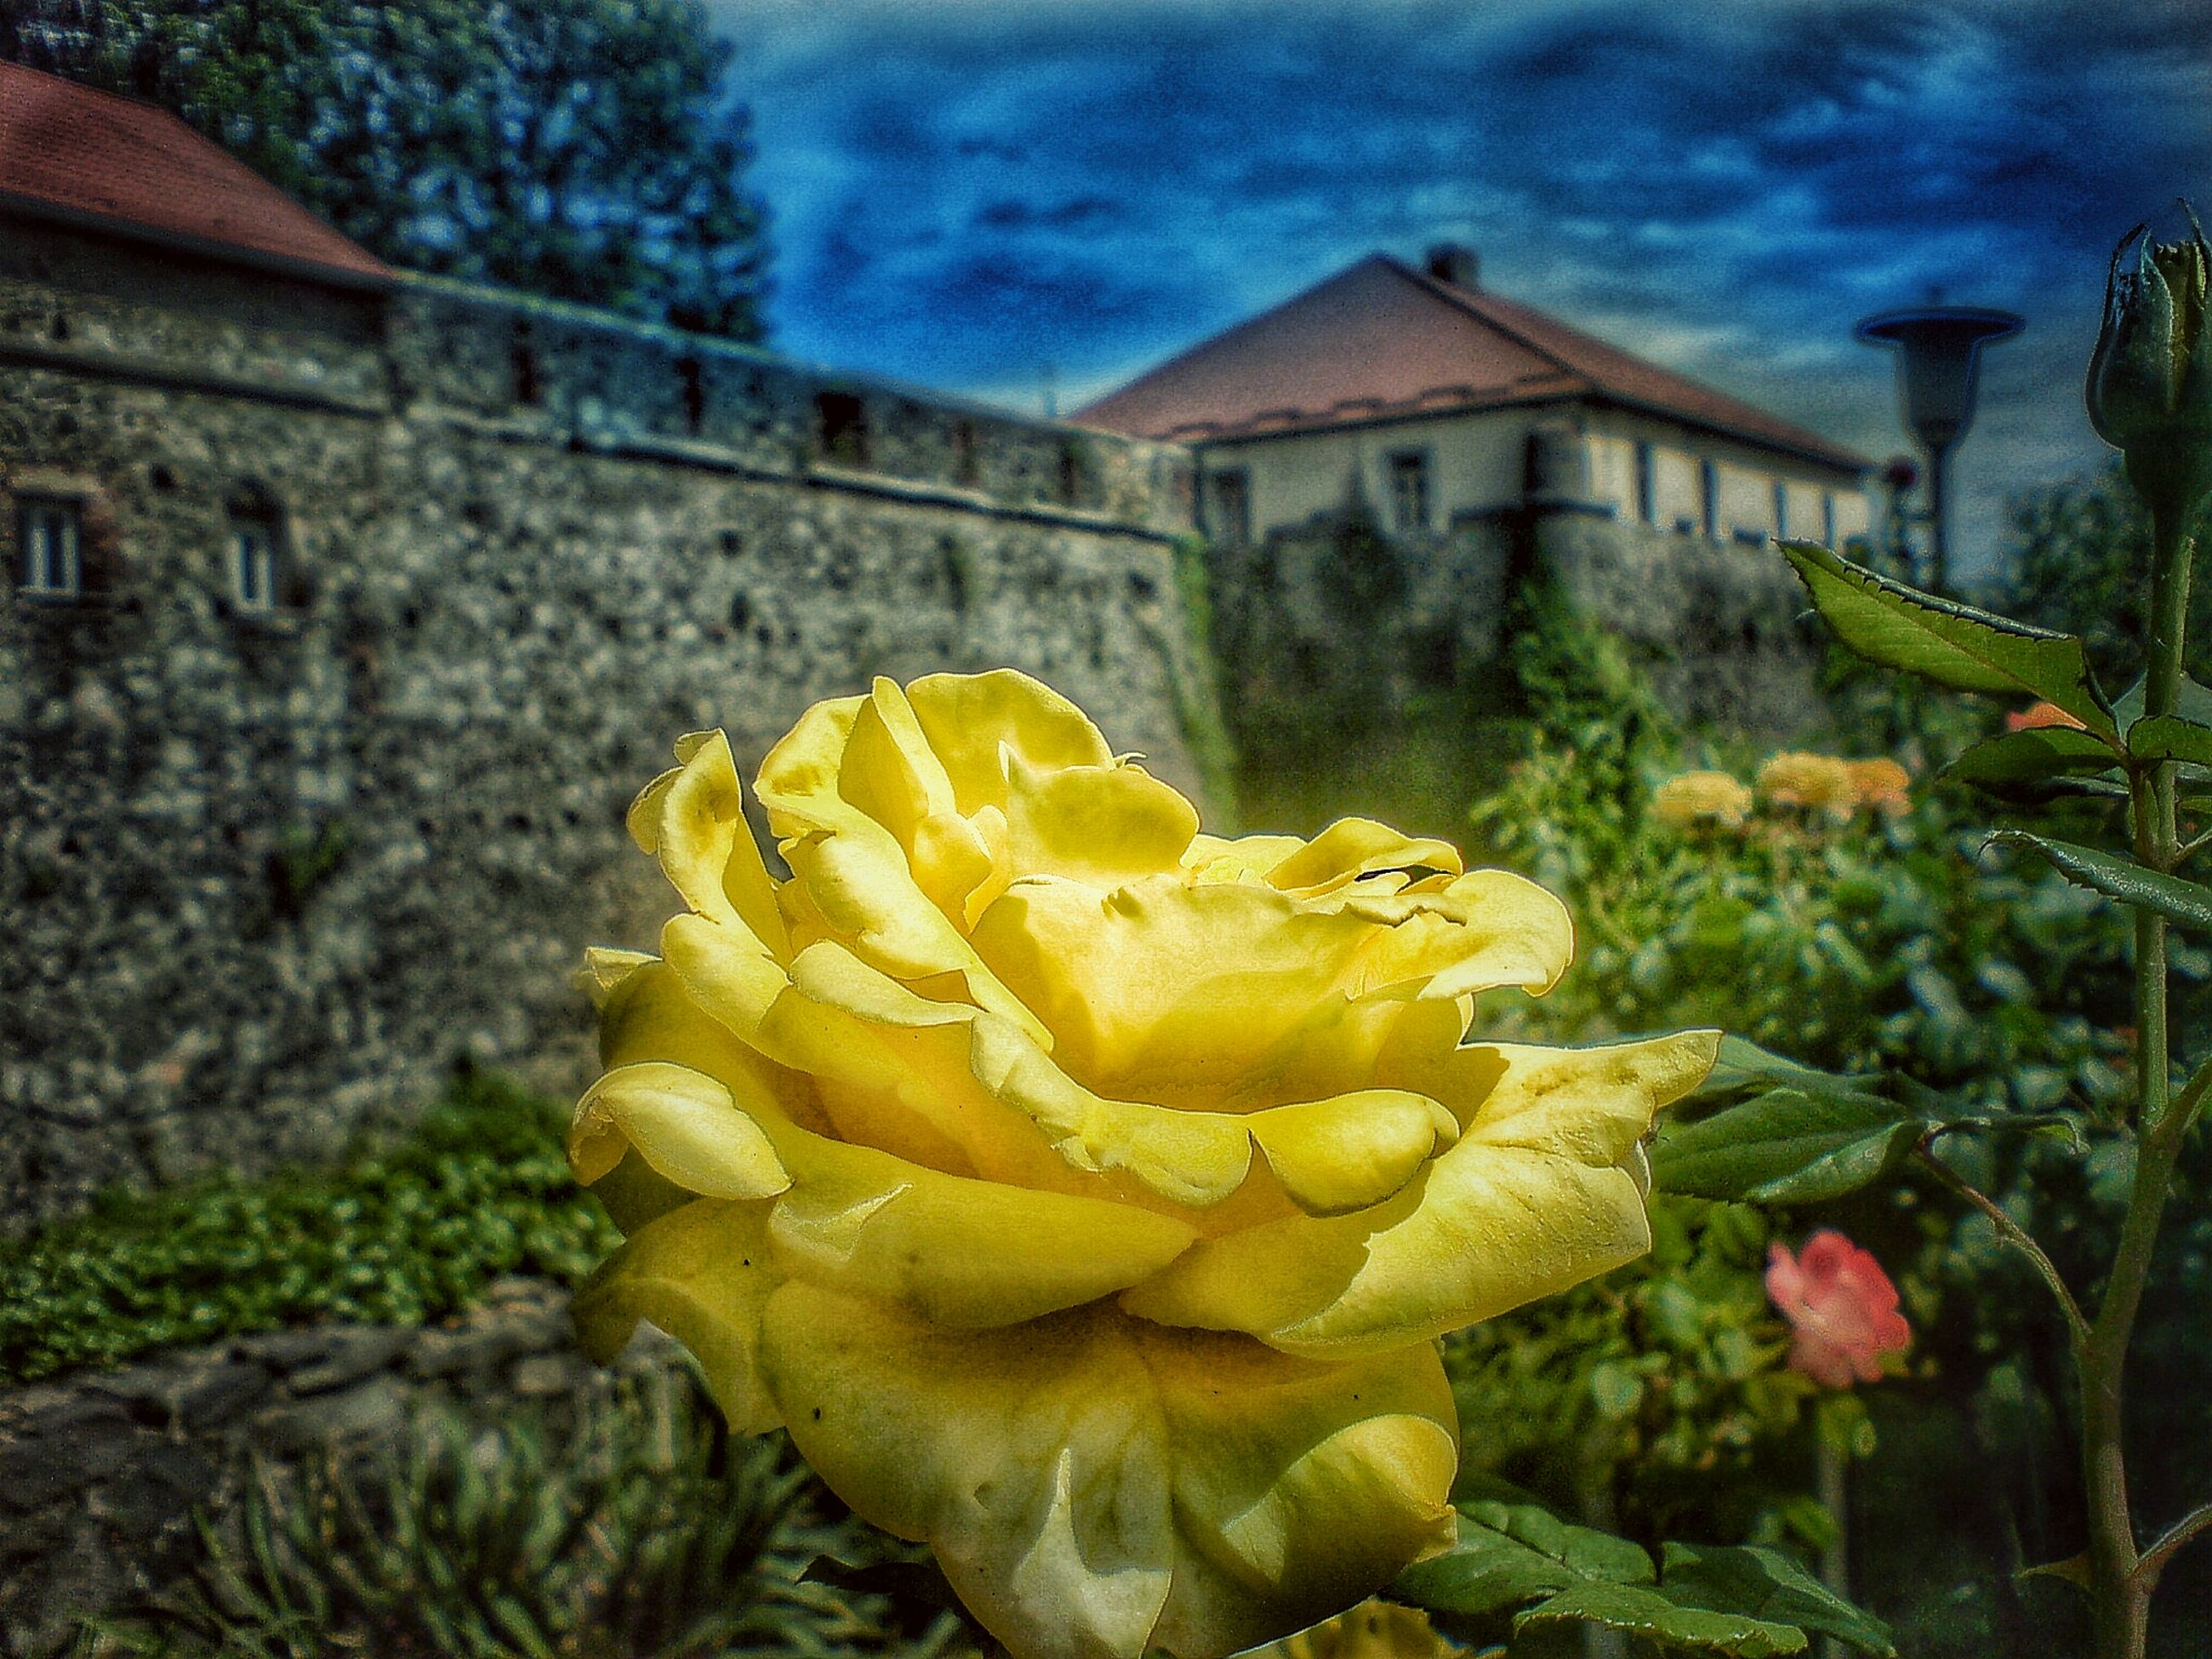 building exterior, flower, yellow, architecture, built structure, freshness, fragility, plant, petal, growth, focus on foreground, flower head, close-up, leaf, outdoors, day, nature, blooming, front or back yard, beauty in nature